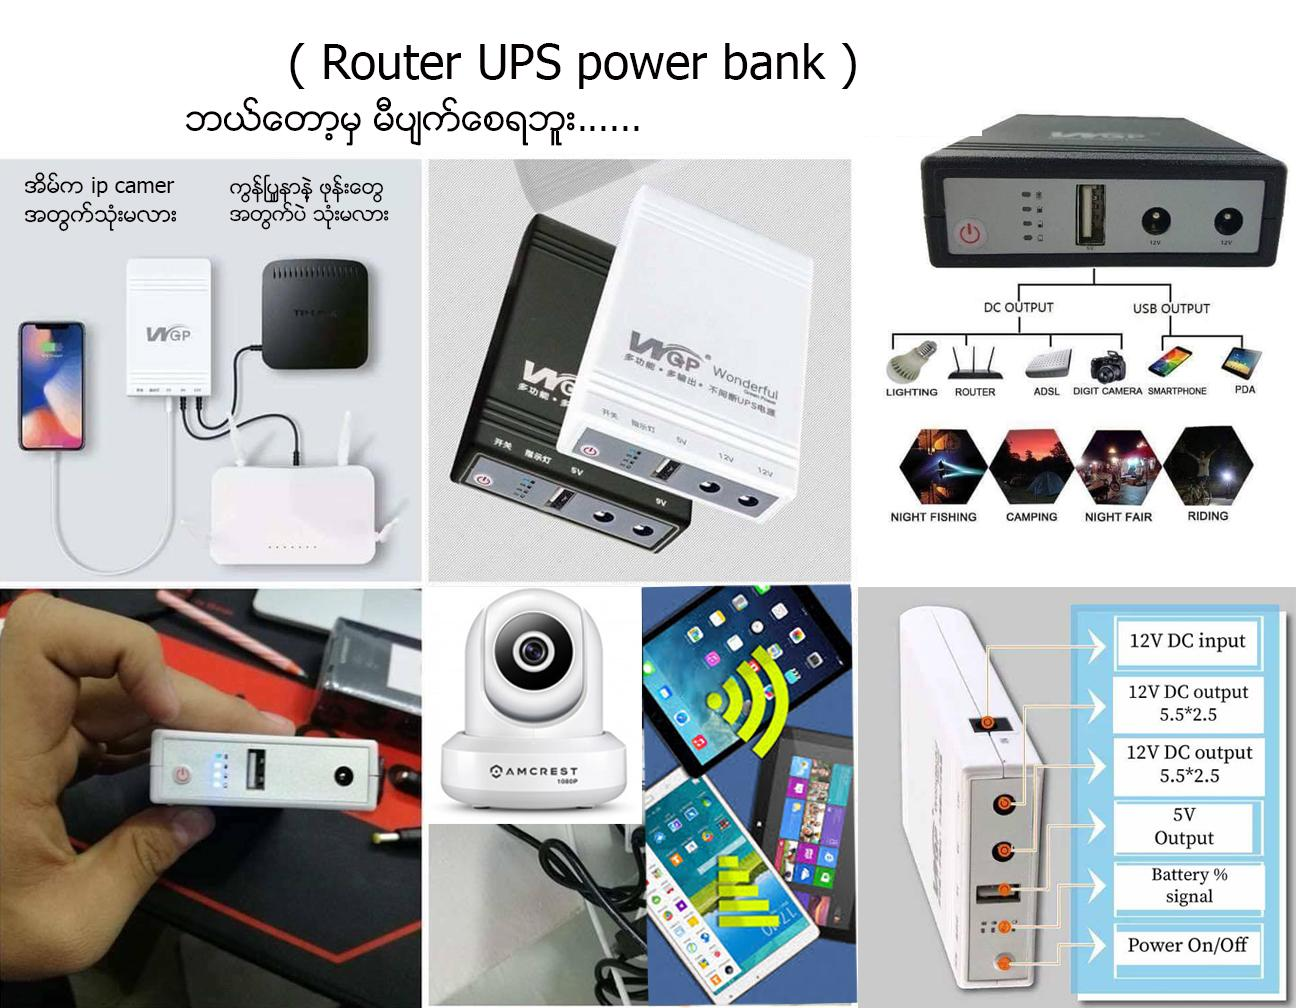 UPS power bank for router